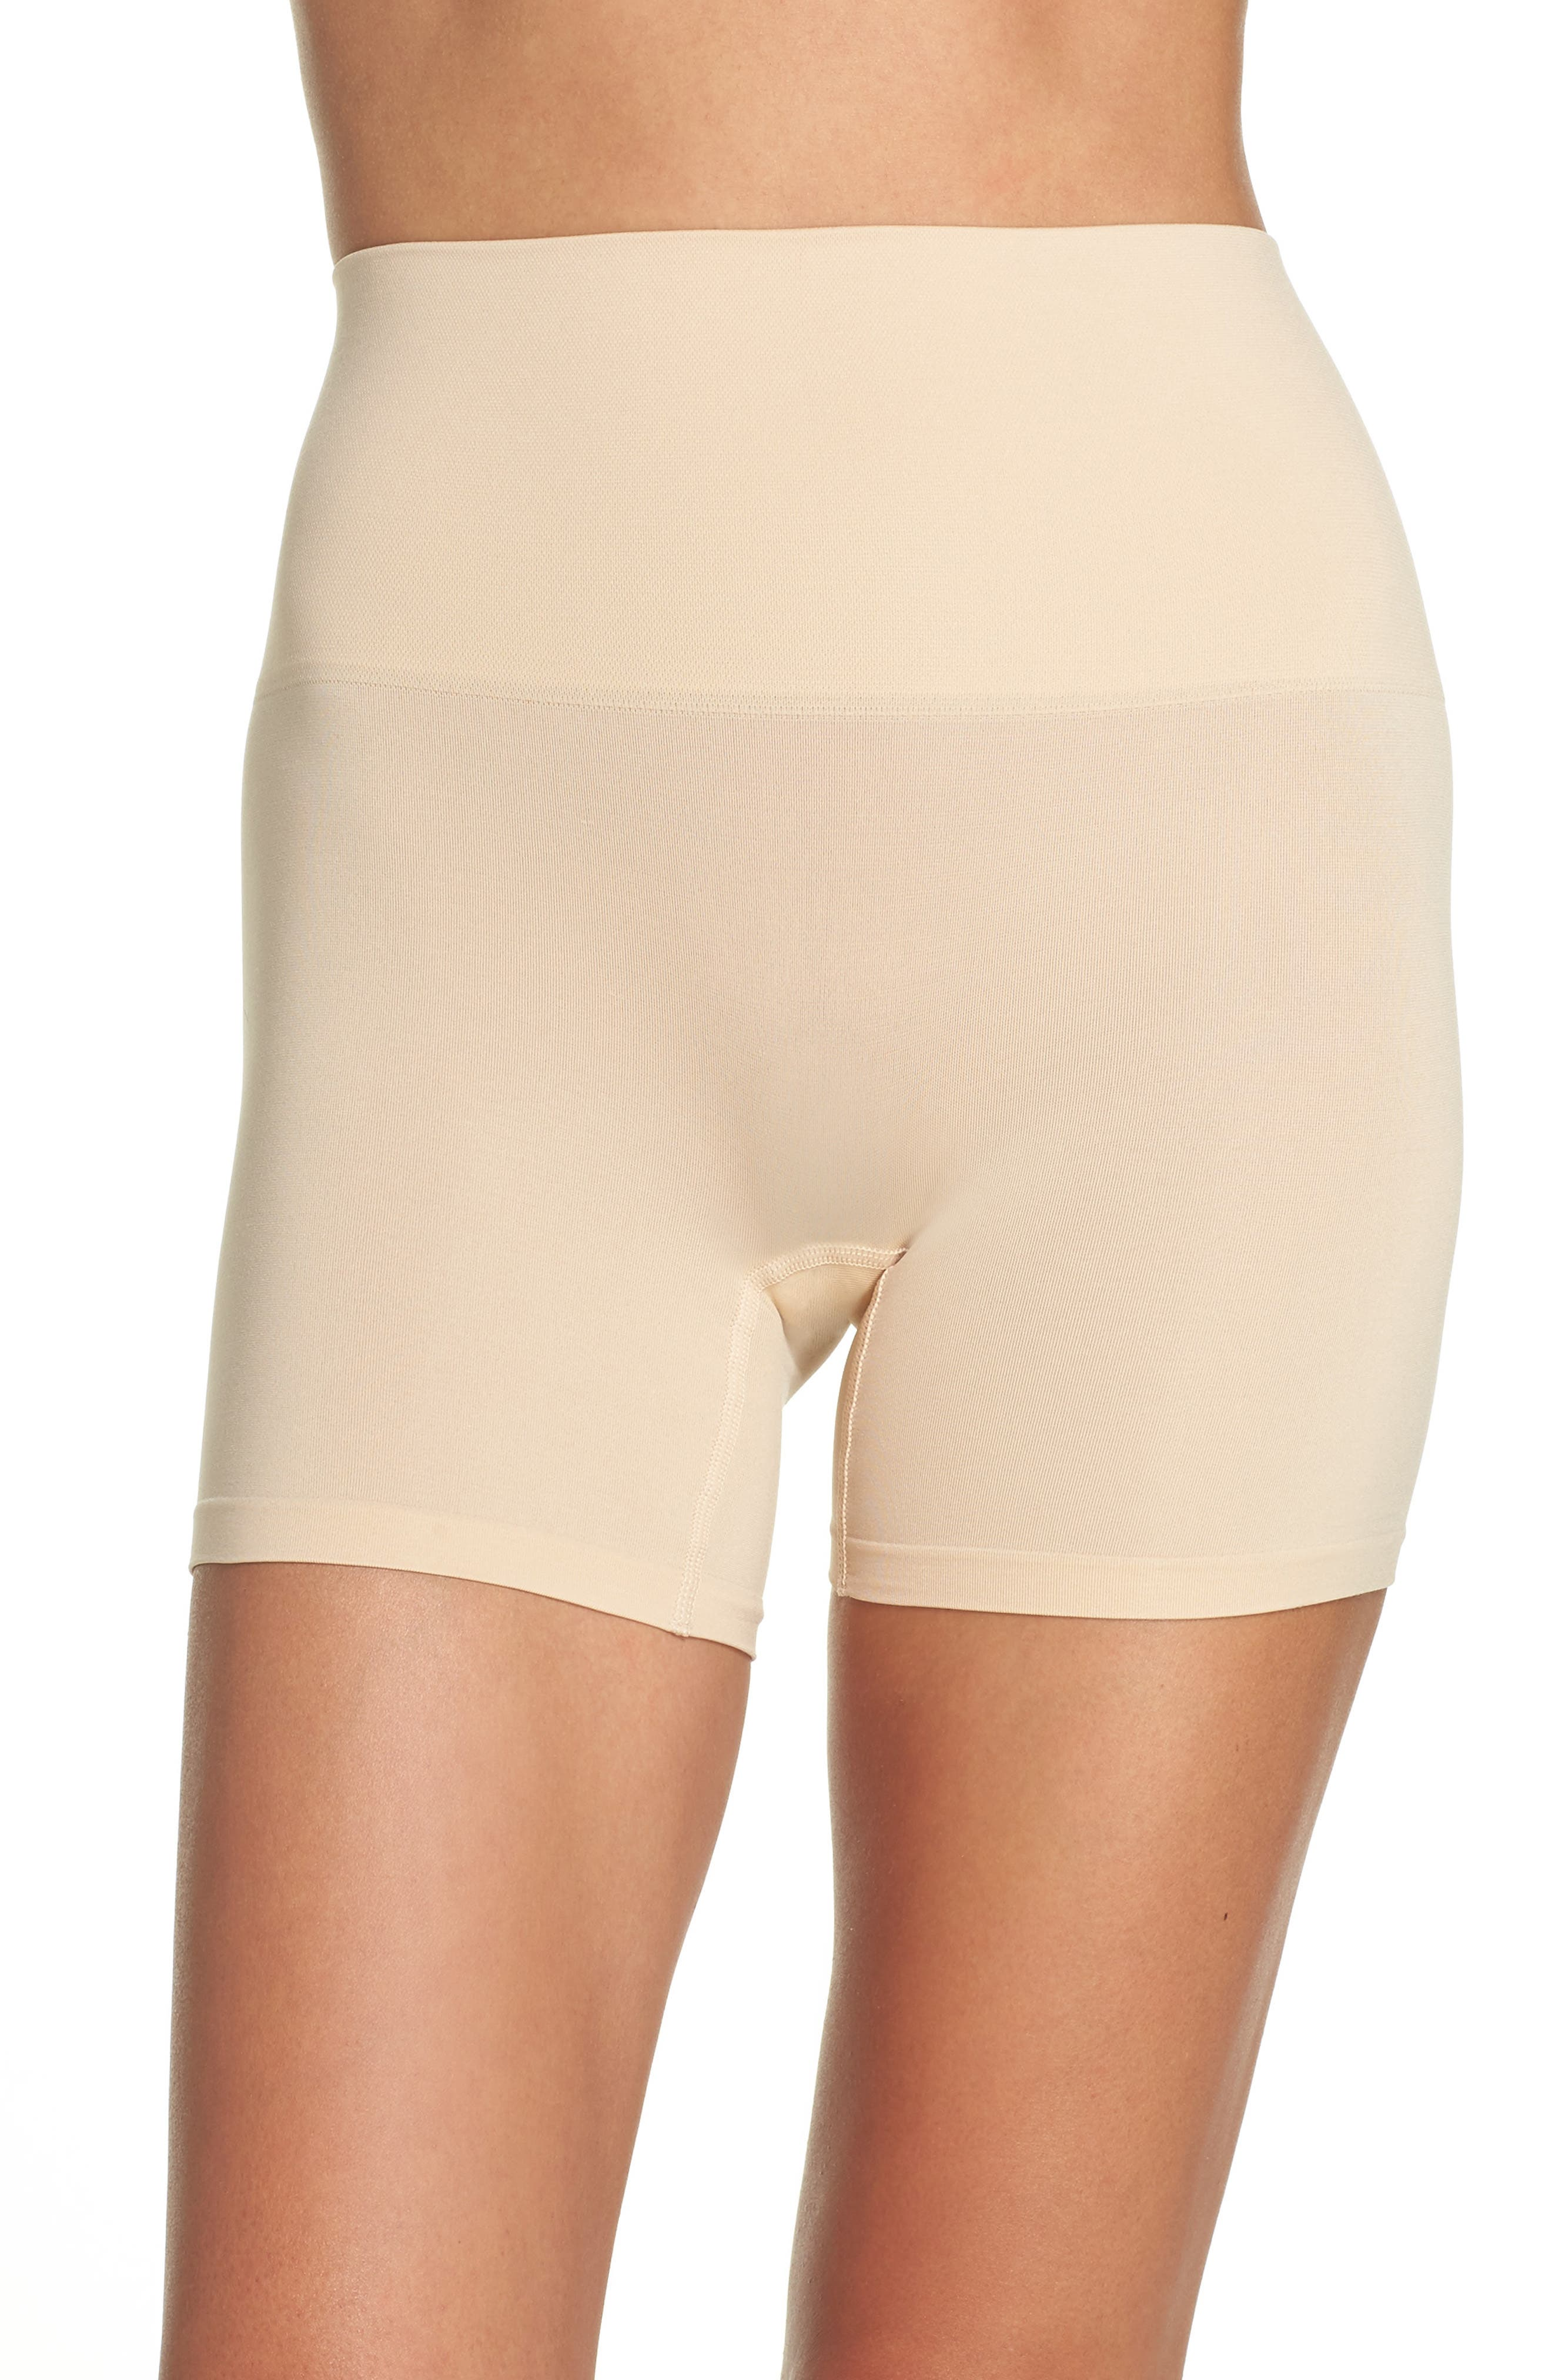 Alternate Image 1 Selected - Yummie Ultralight Seamless Shaping Shorts (2 for $30)